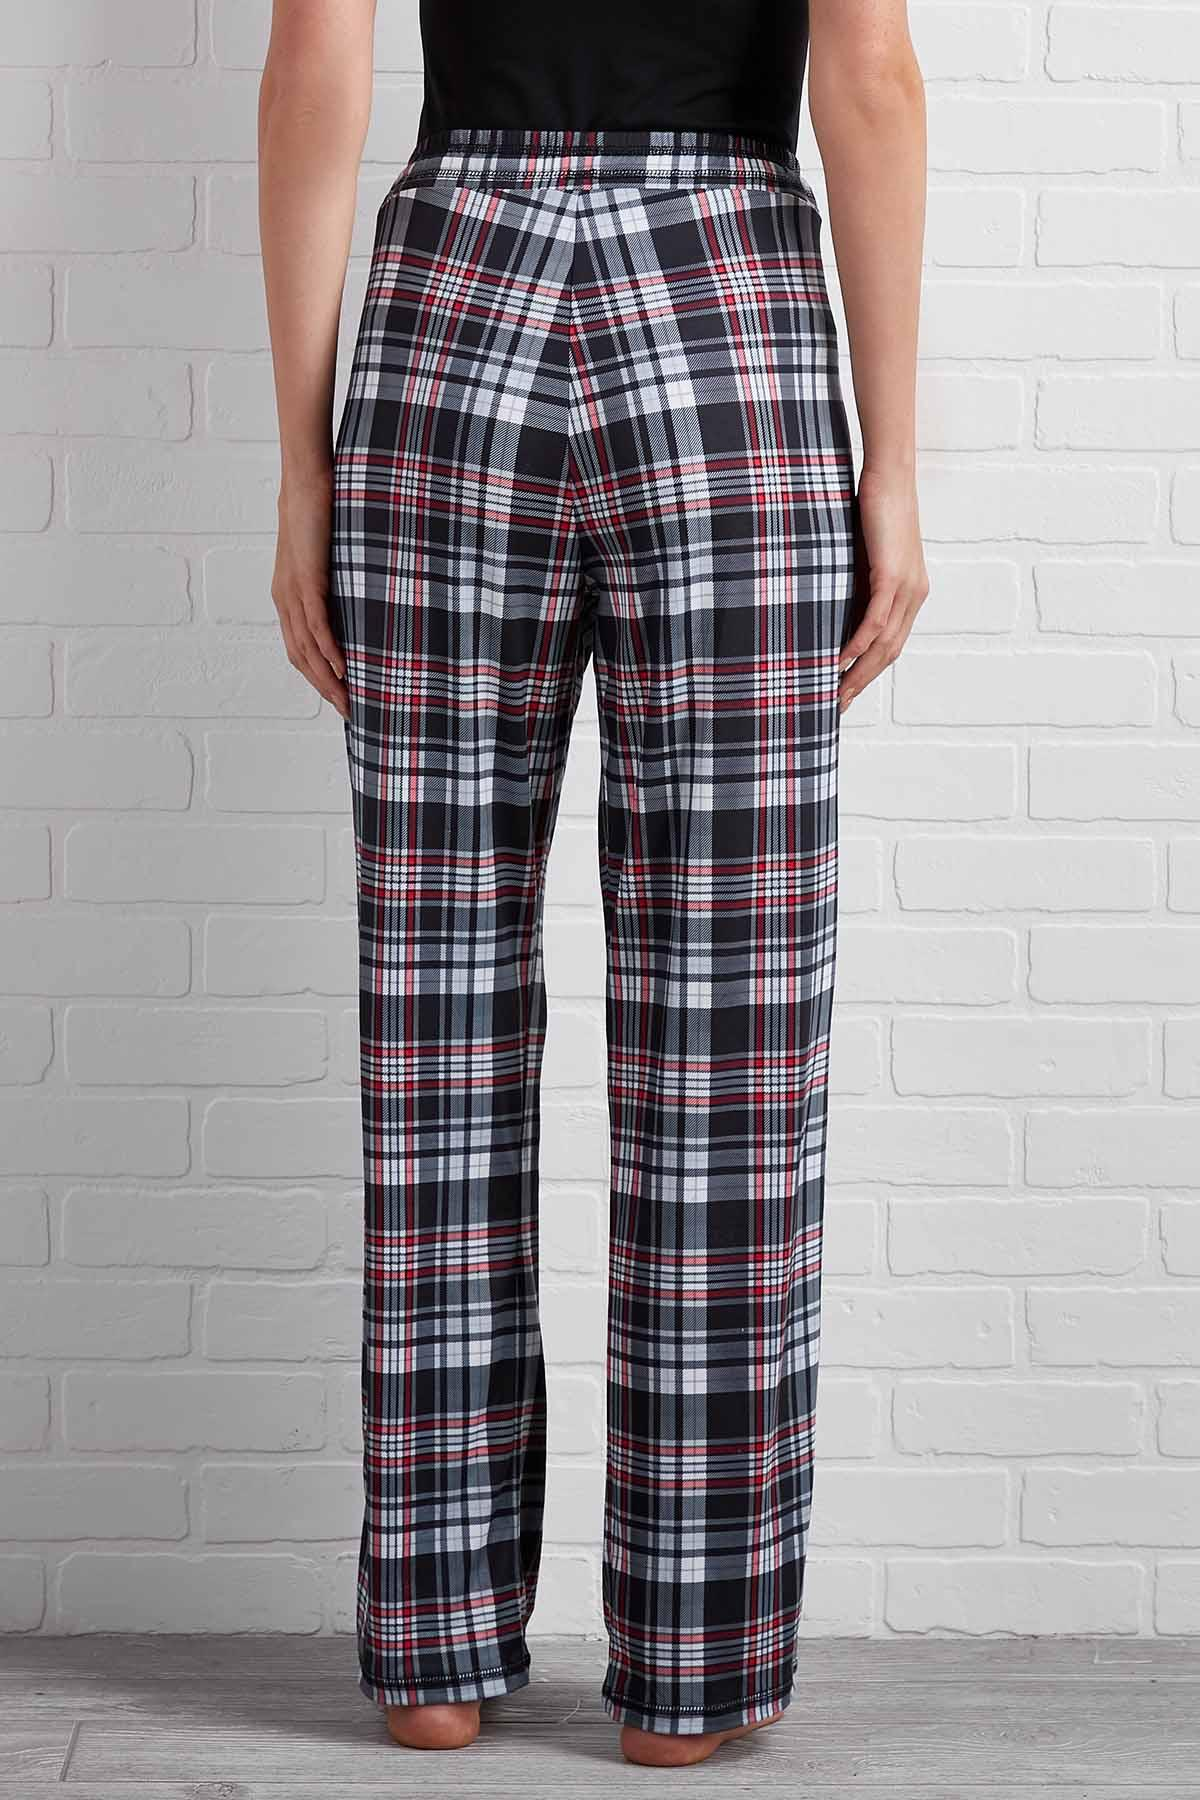 Cozy Christmas Sleep Pants